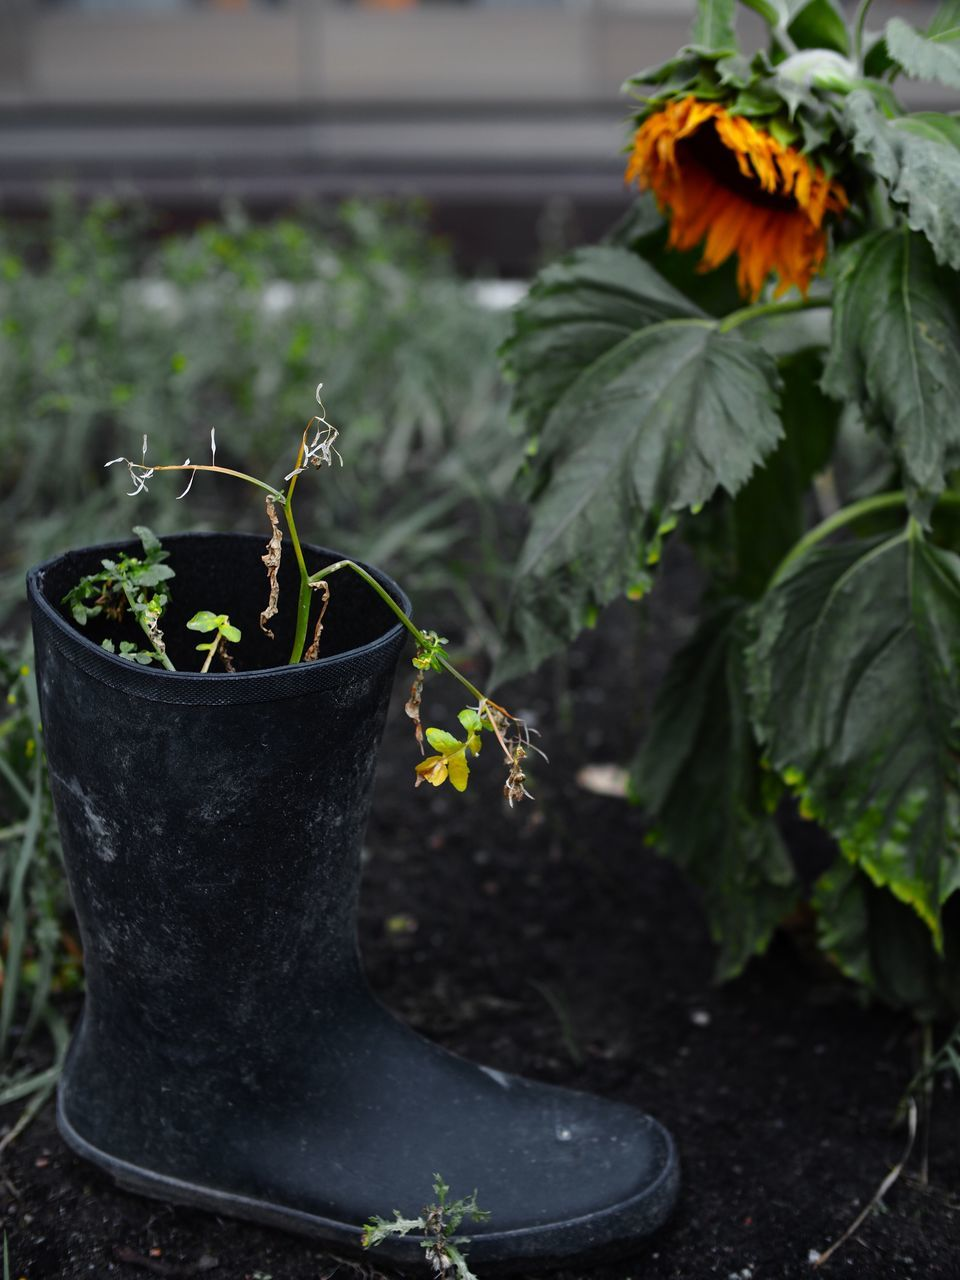 growth, plant, potted plant, leaf, nature, day, no people, outdoors, close-up, fragility, freshness